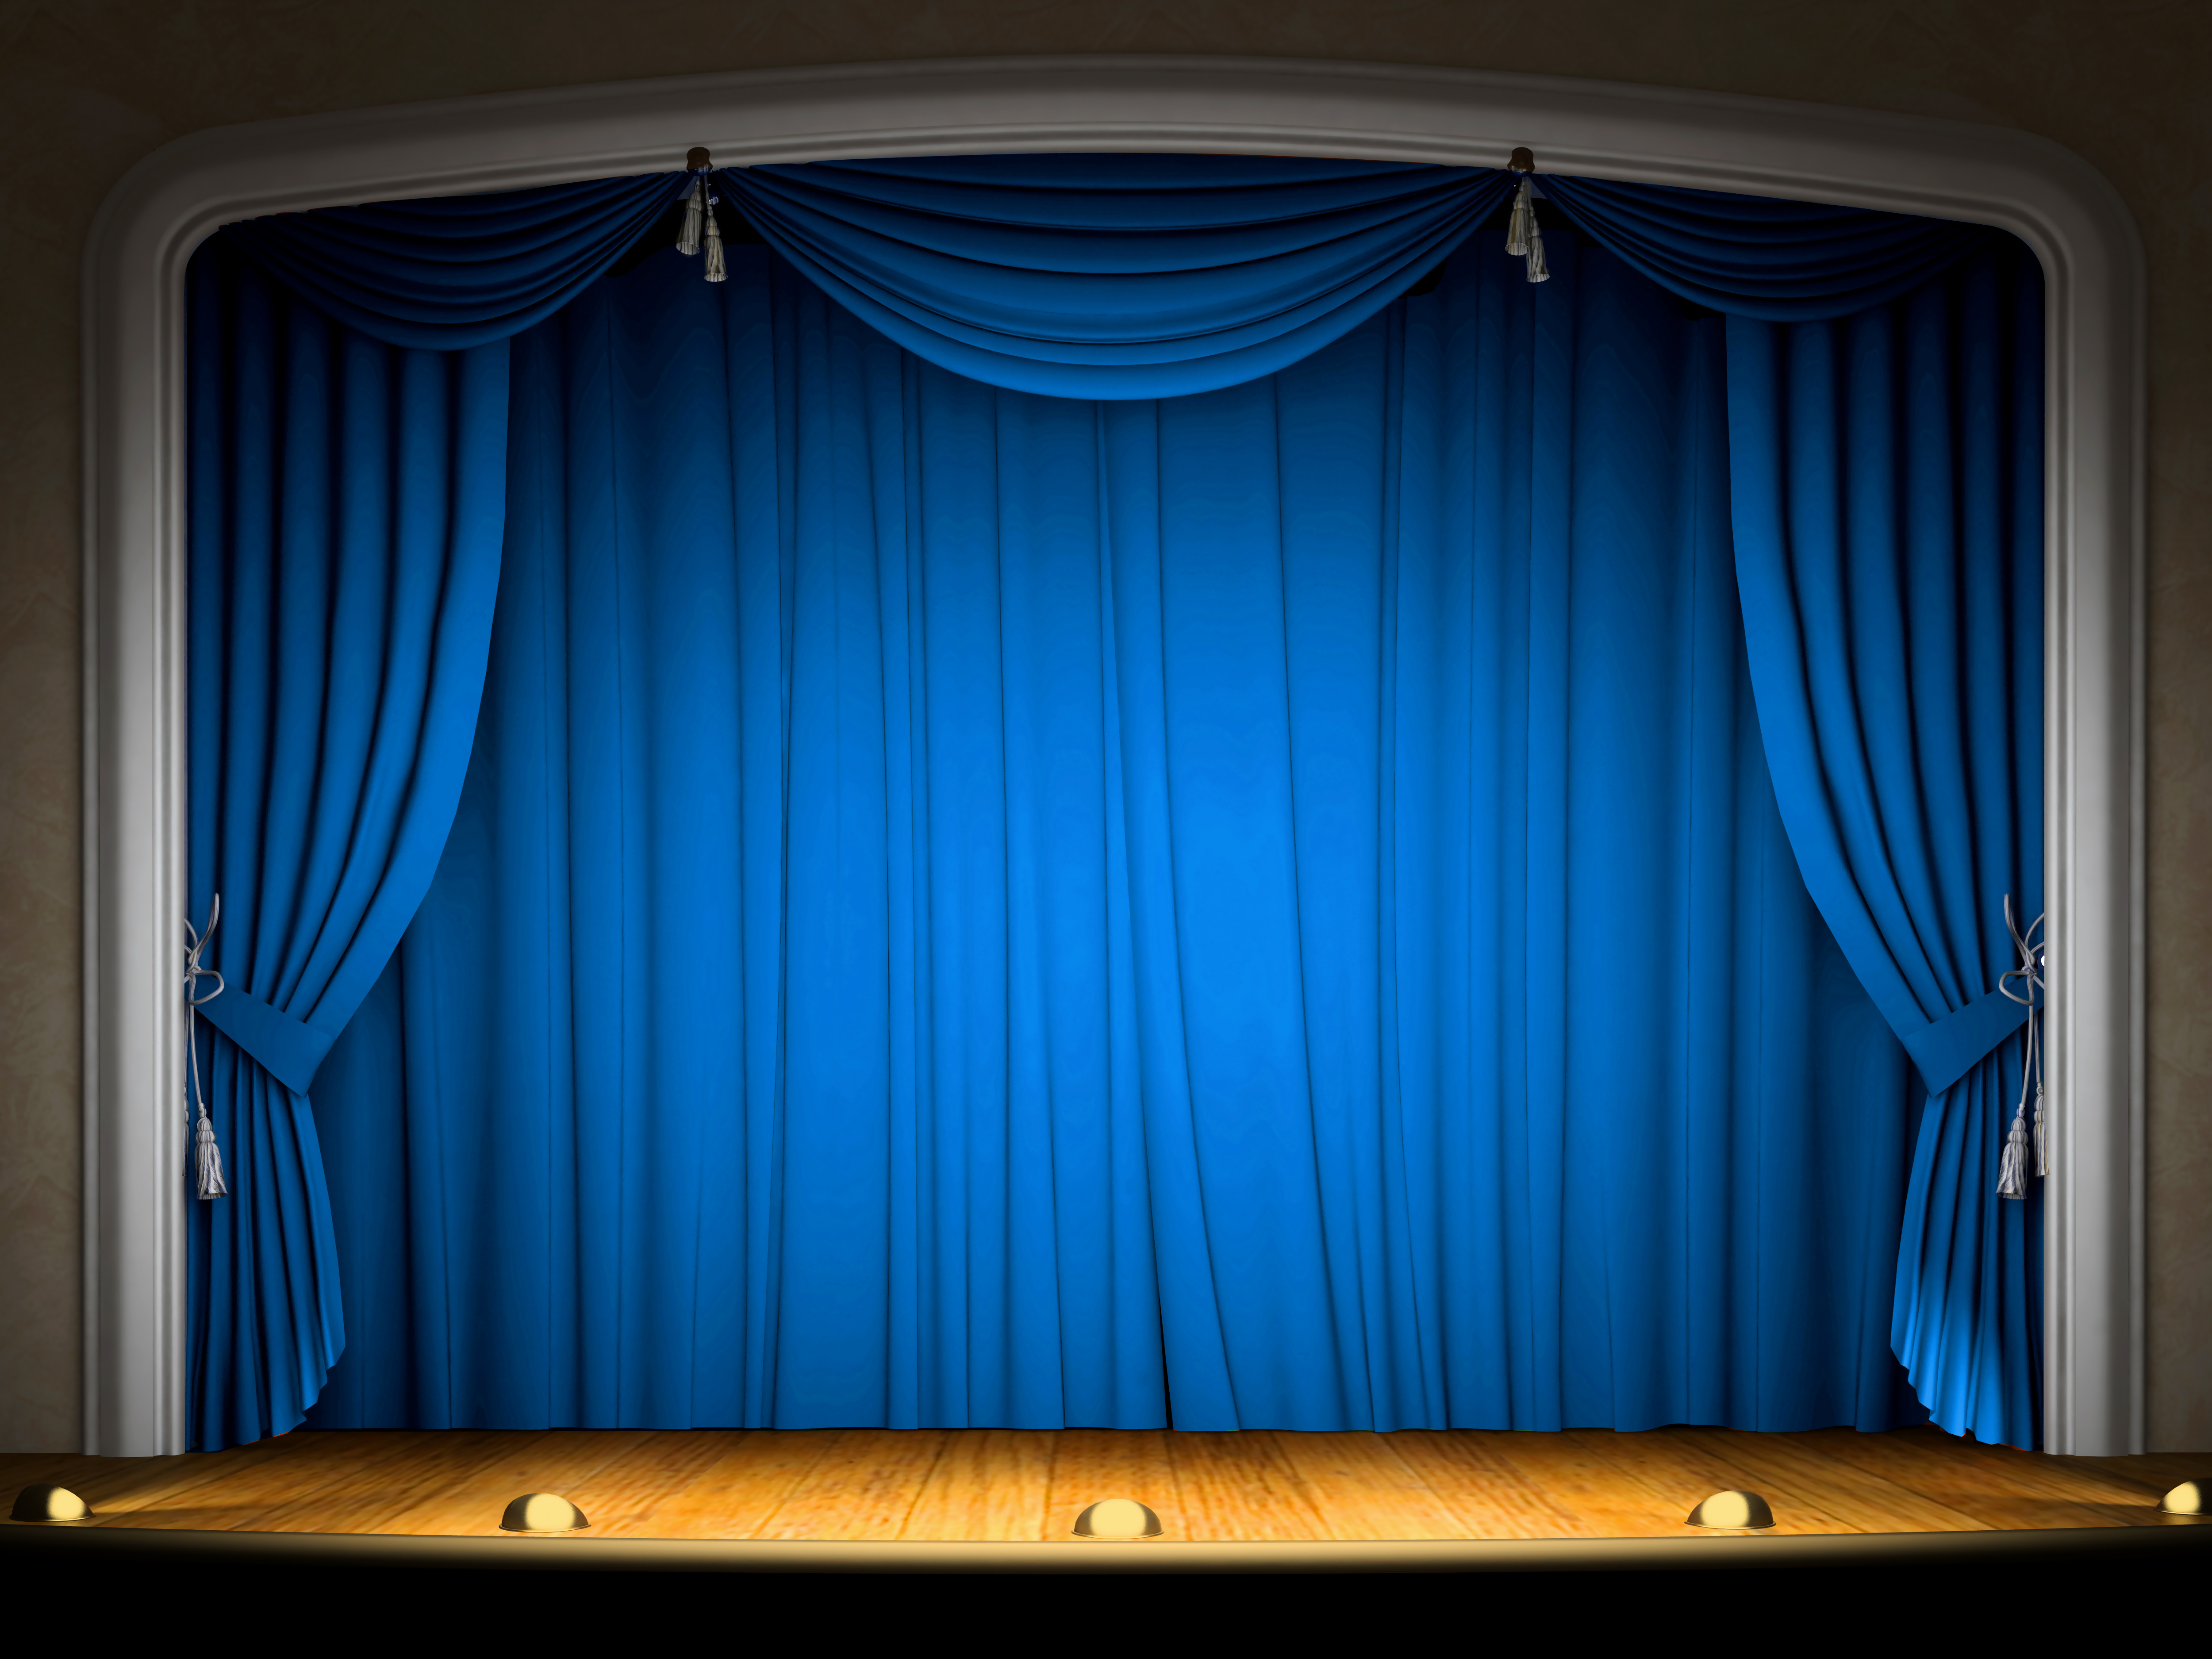 Stage clipart blue curtain. With curtains background gallery